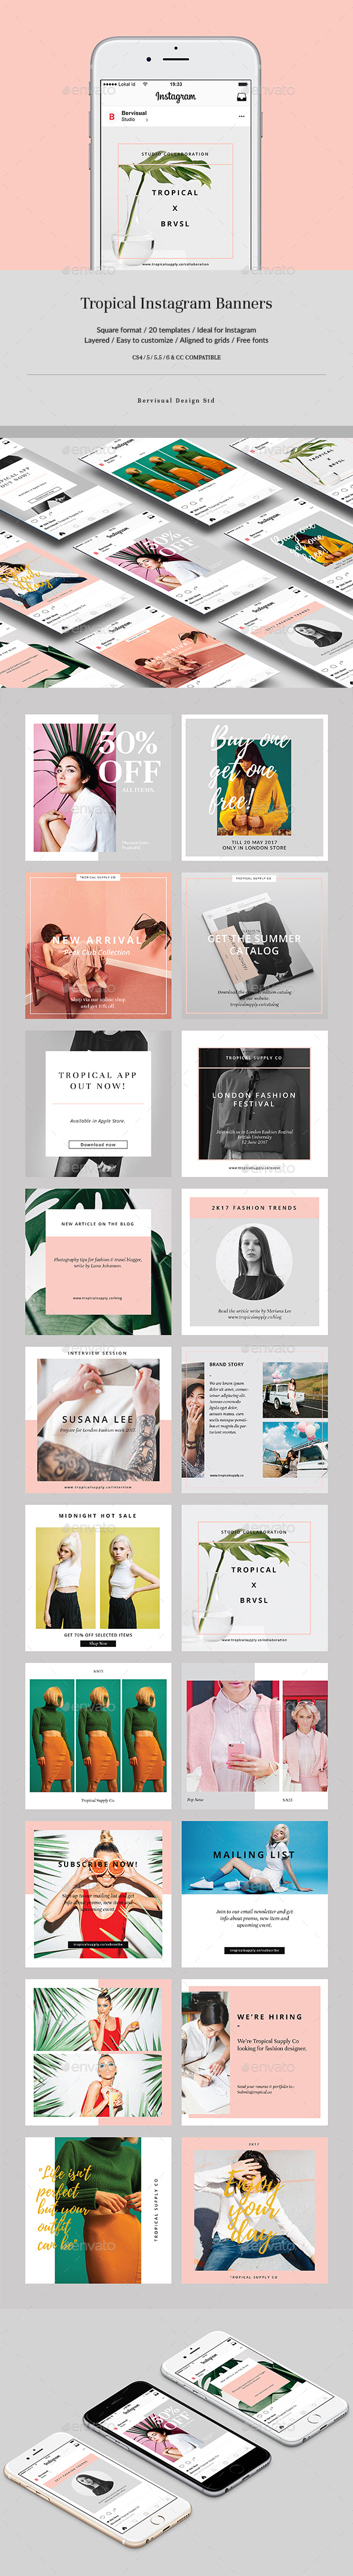 Tropical Instagram Banners - Social Media Web Elements